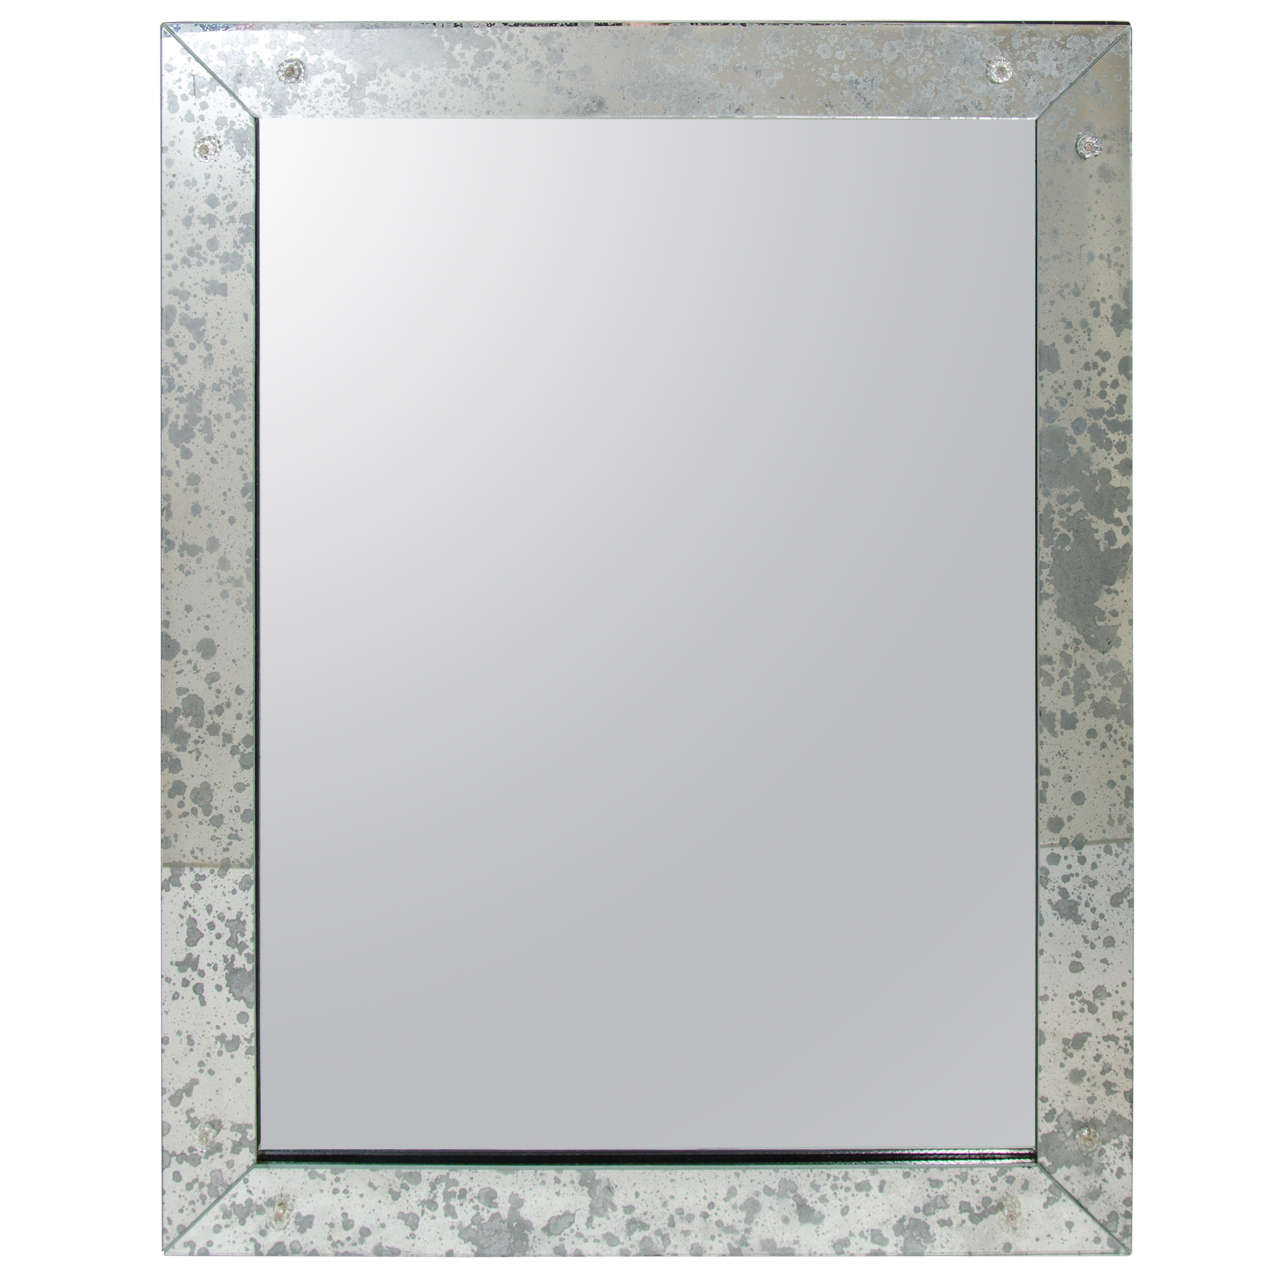 Hollywood Regency Mirror With Antiqued Glass Borders For Sale